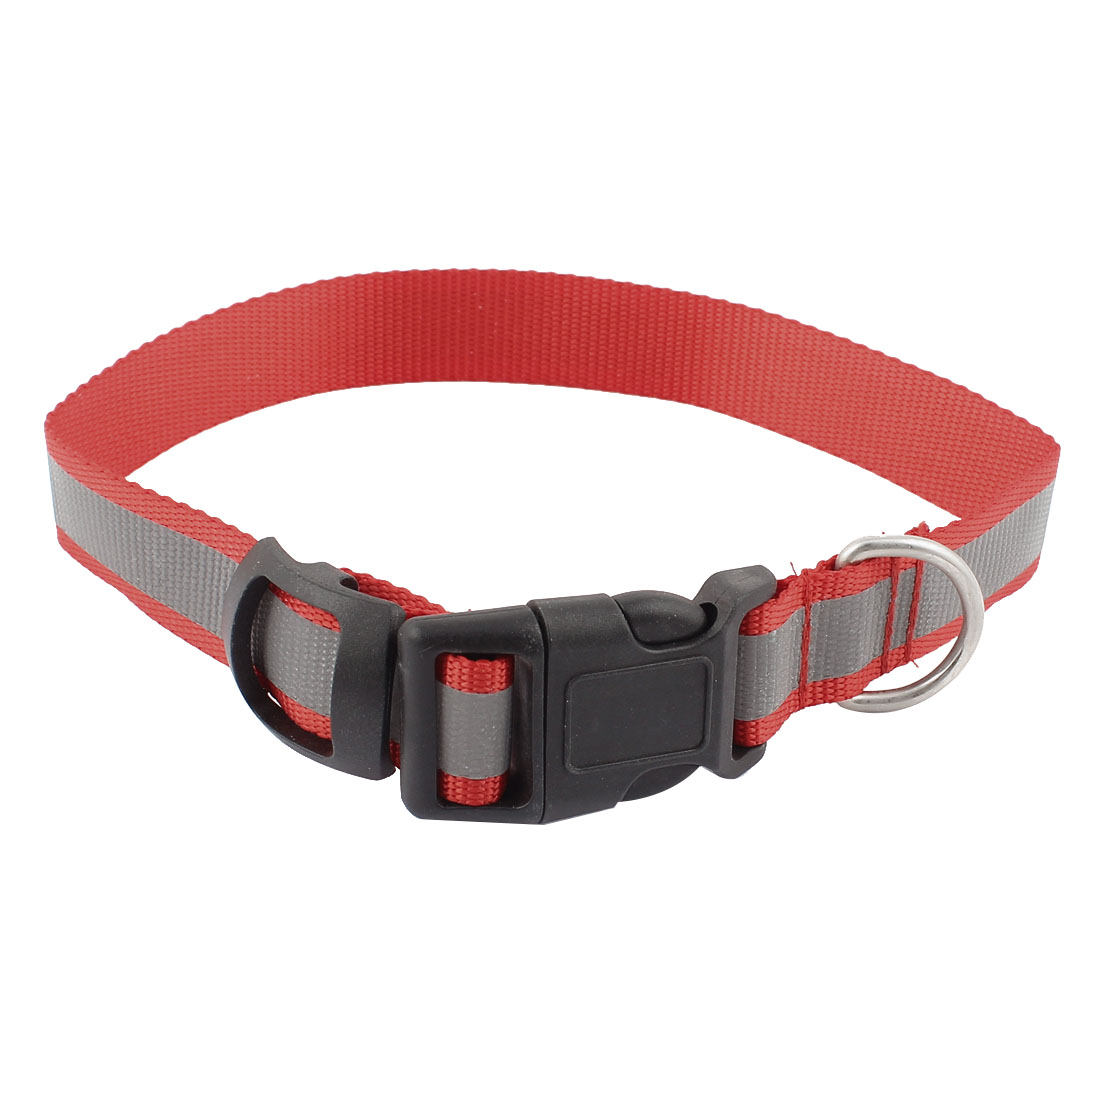 Pet Dog Doggy Buckle Release Tracking Reflective Collar Leash Belt Red